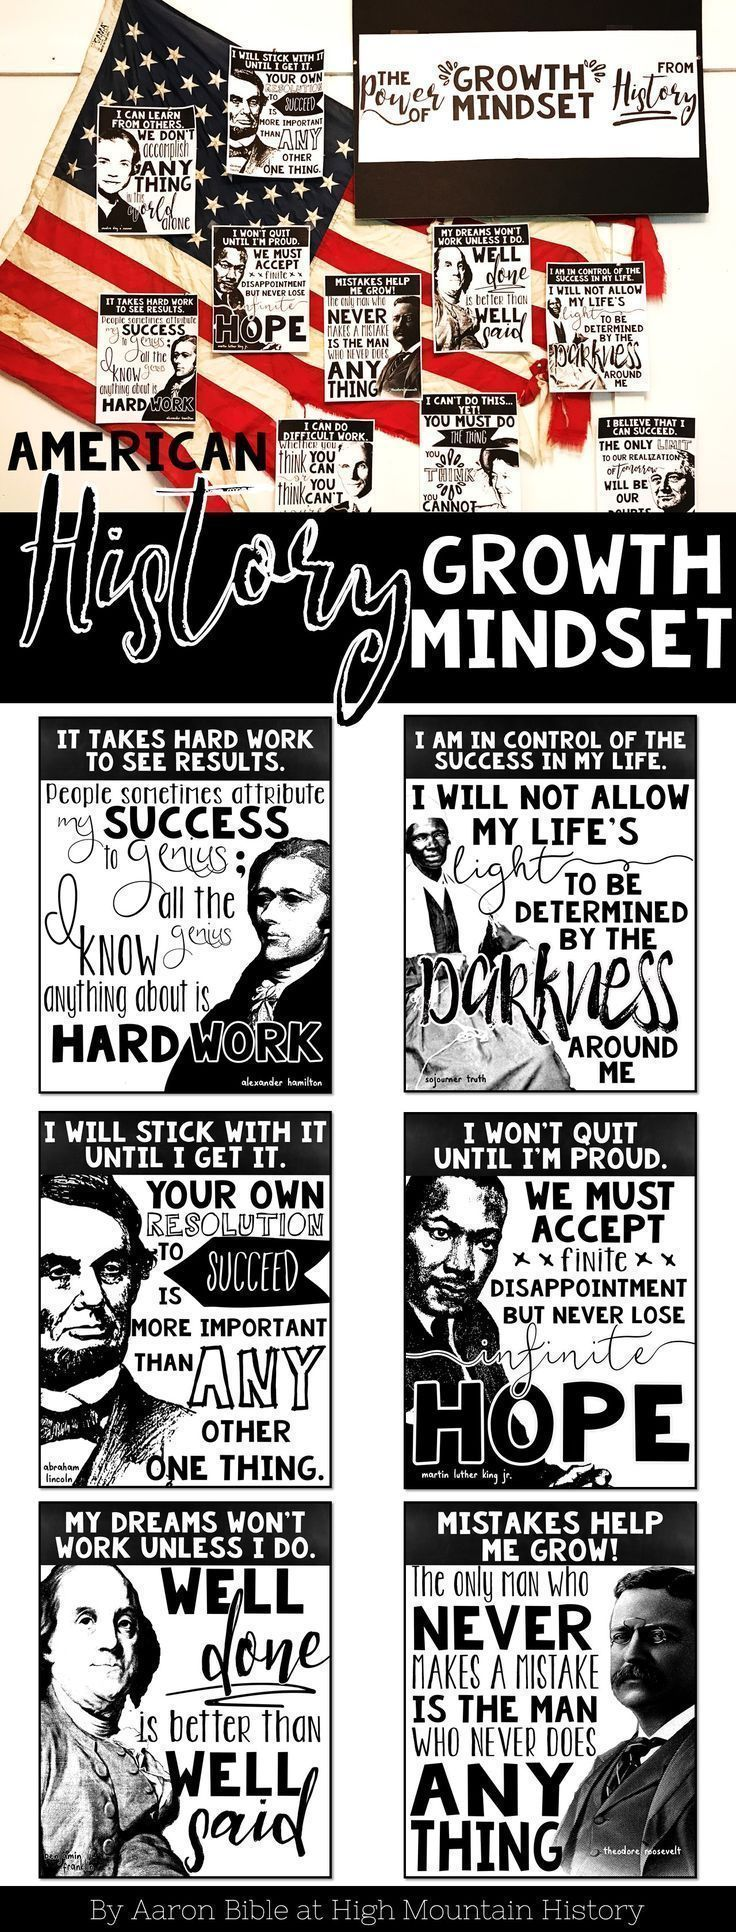 when using the growth mindset Use the learning process and scientific insights to improve, and get more out of your practice understanding your mindset can make practicing more enjoyable.